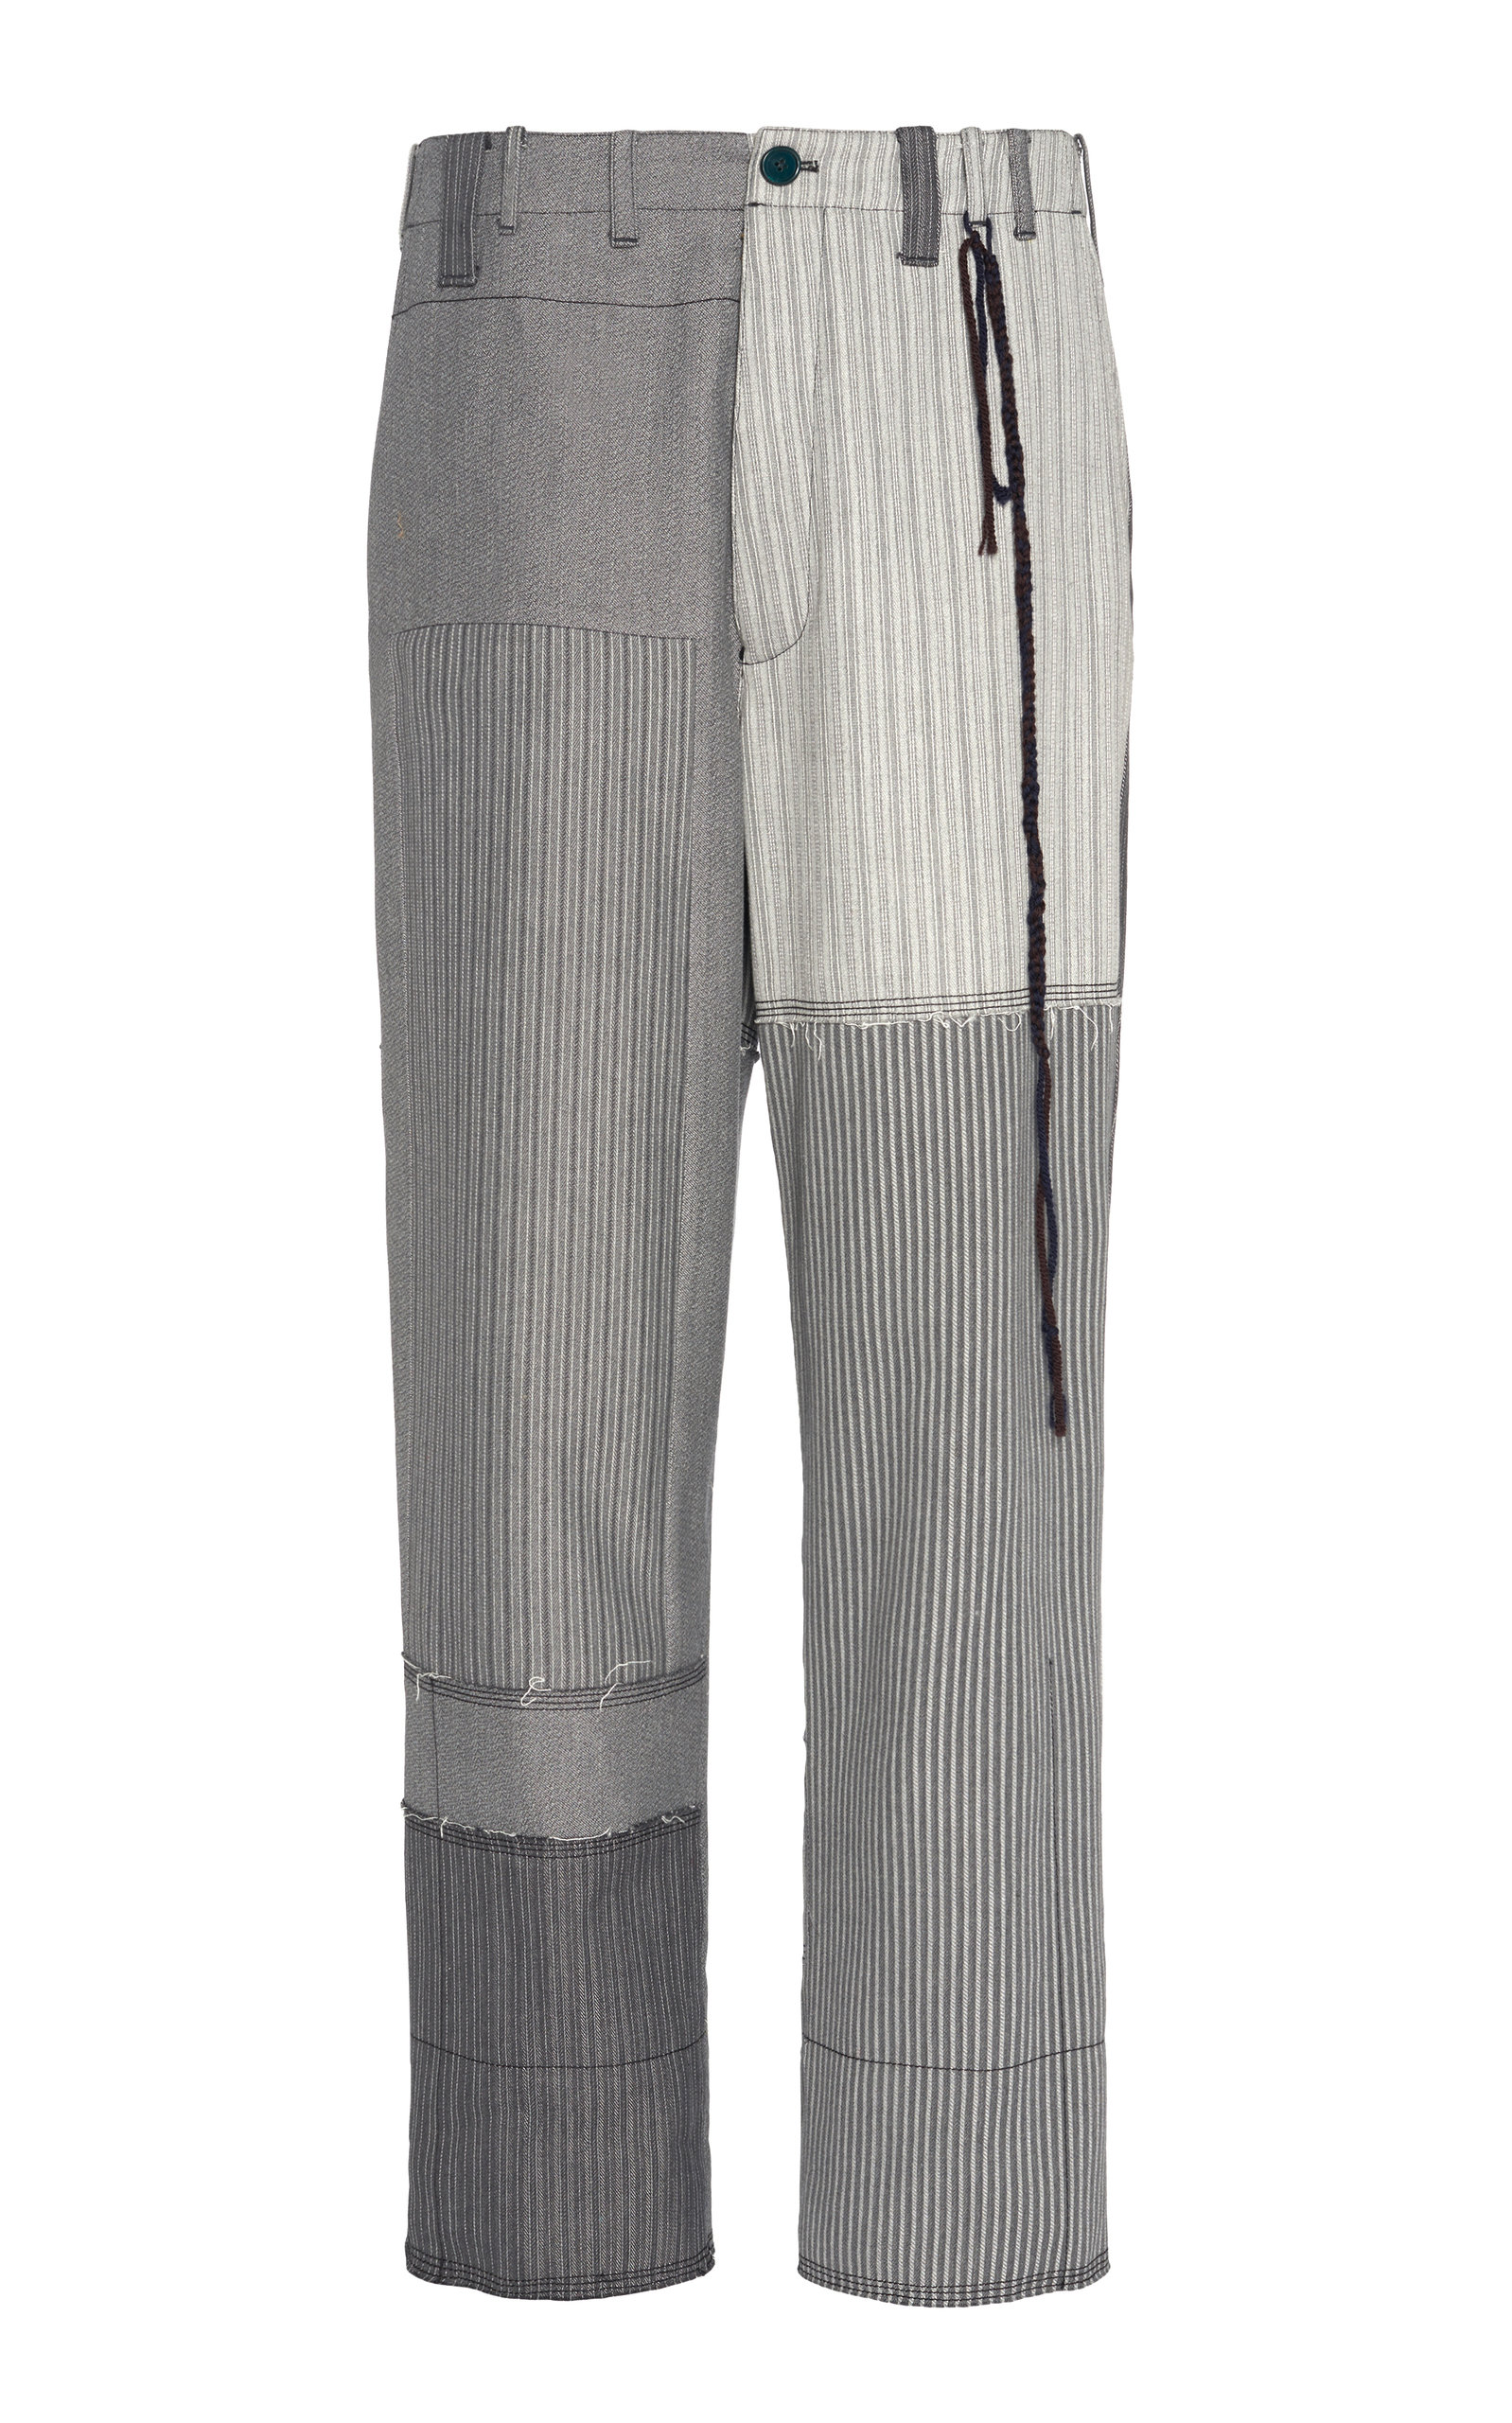 Patchwork Striped Straight Leg Cotton Chinos by Federico Curradi